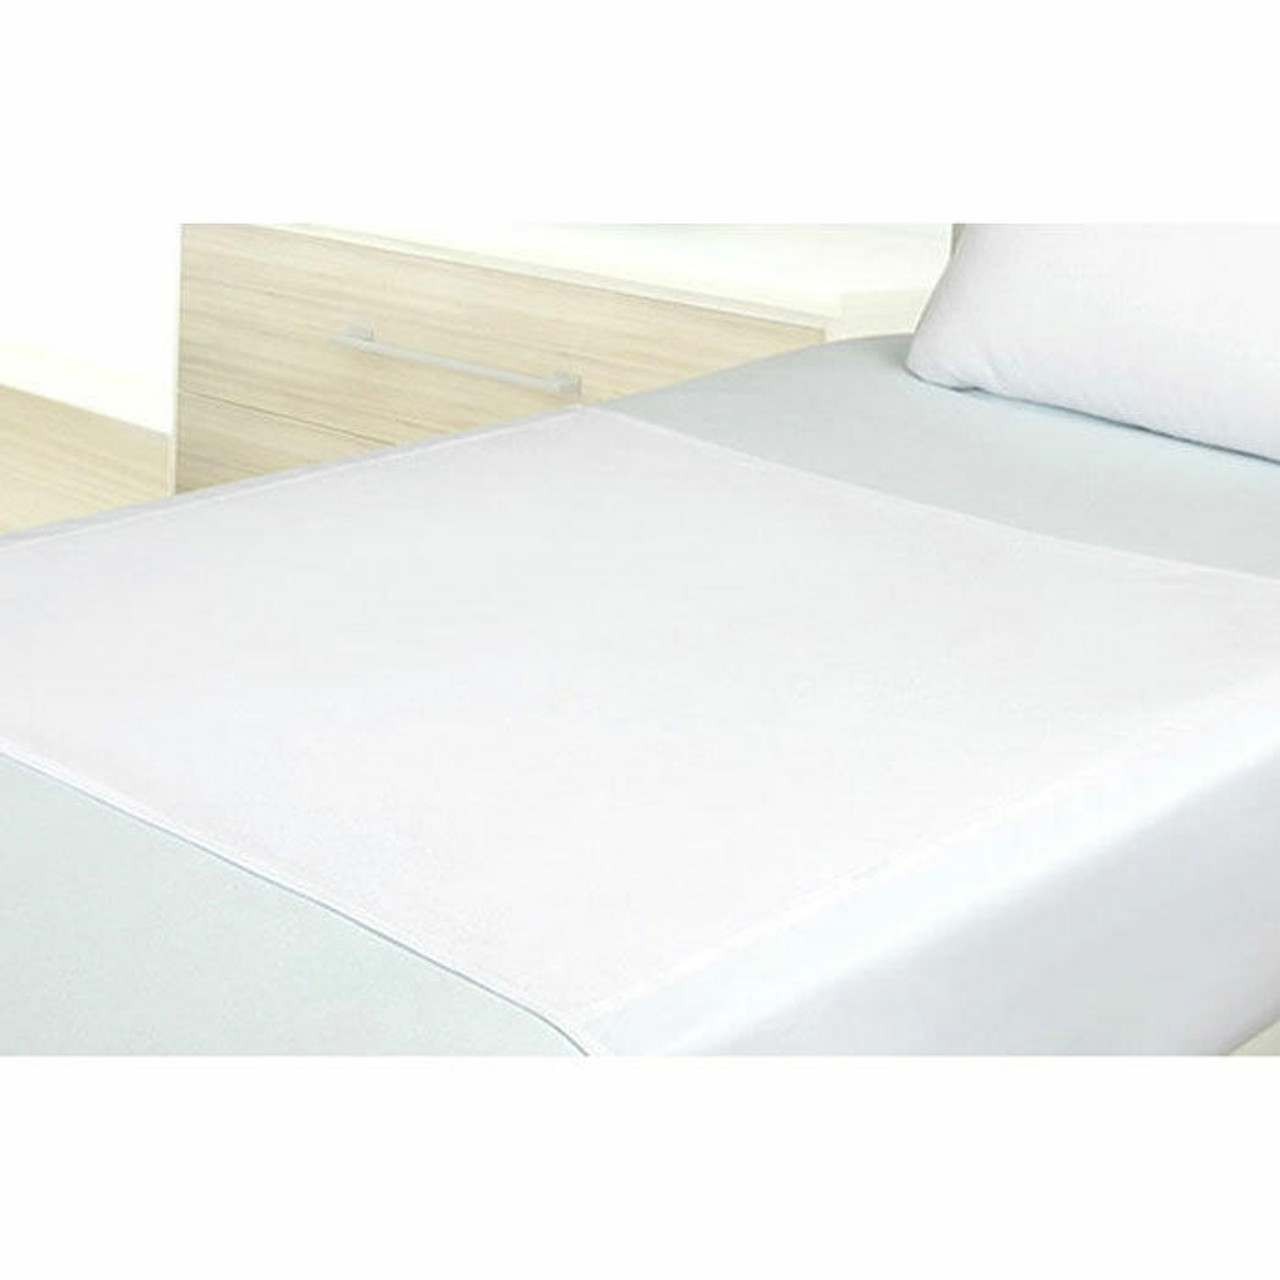 Bargoose BARGOOSE or LAMINATED TRICOT or DRAW SHEET or W/ POLY/COTTON TUCK-IN TAILS or 36X72 or 12 PER CASE